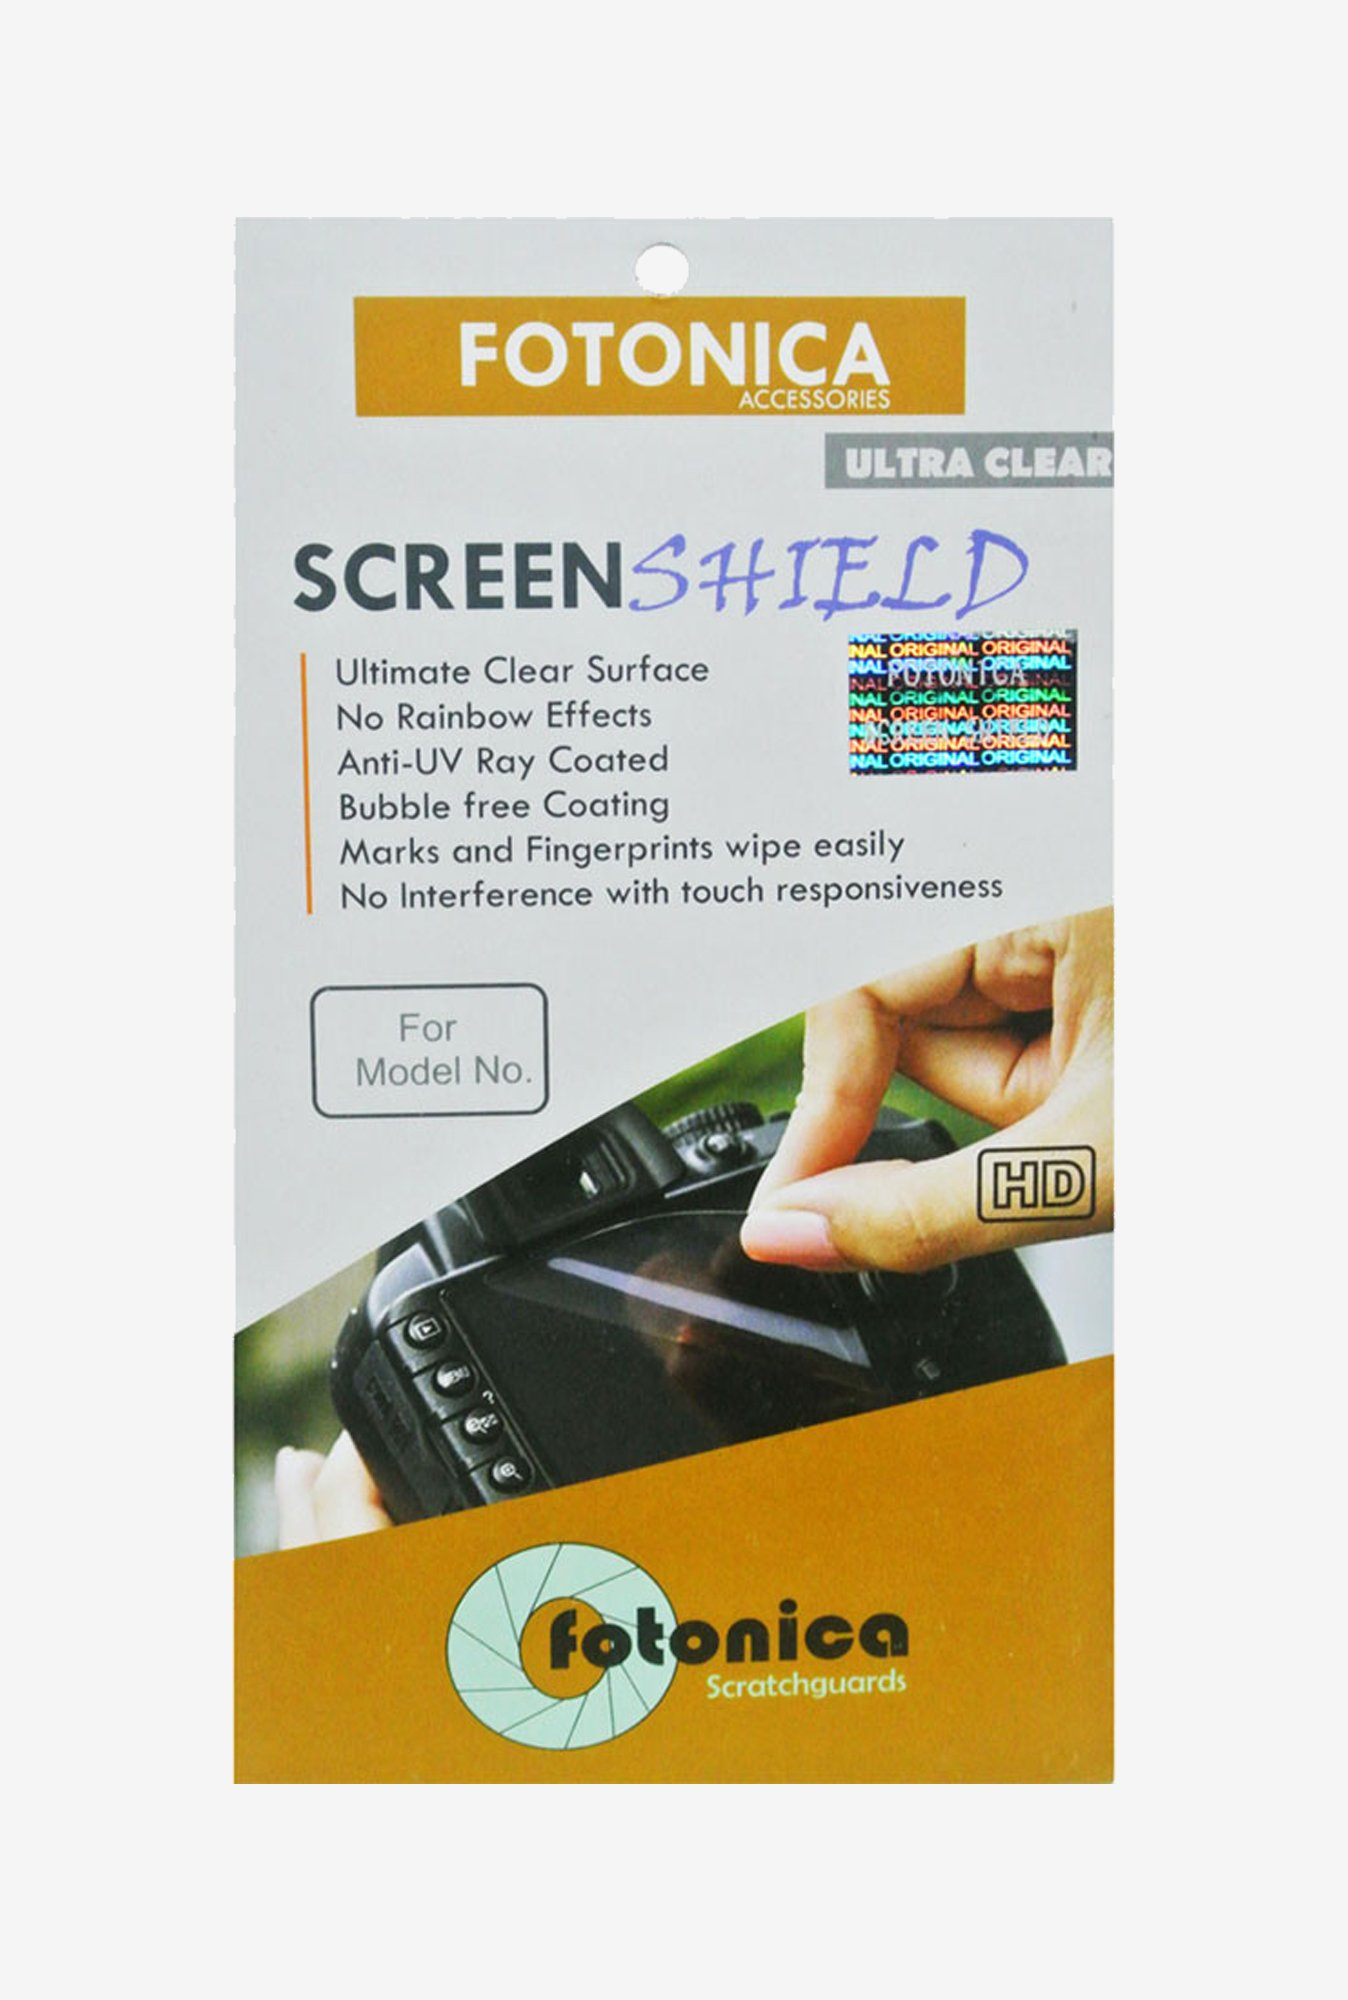 Fotonica Ultra Clean Screen Shield for Nikon D90 DSLR Camera